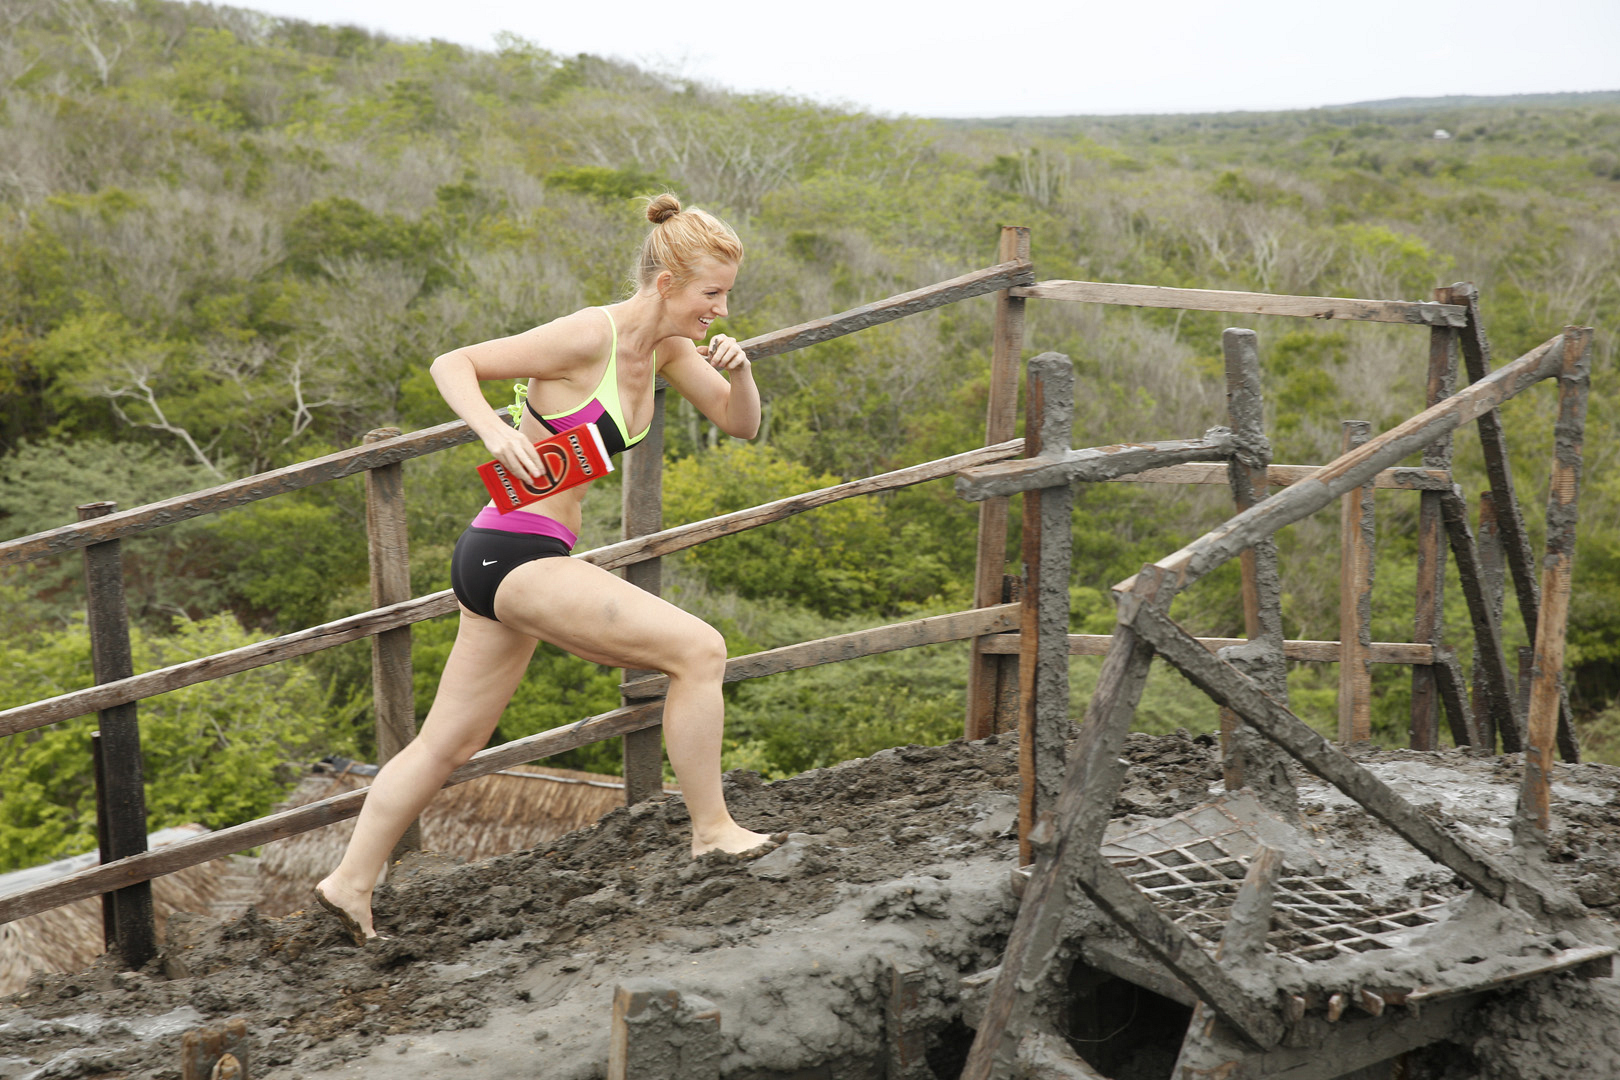 Ashley runs through the slippery mud in search for an emerald.